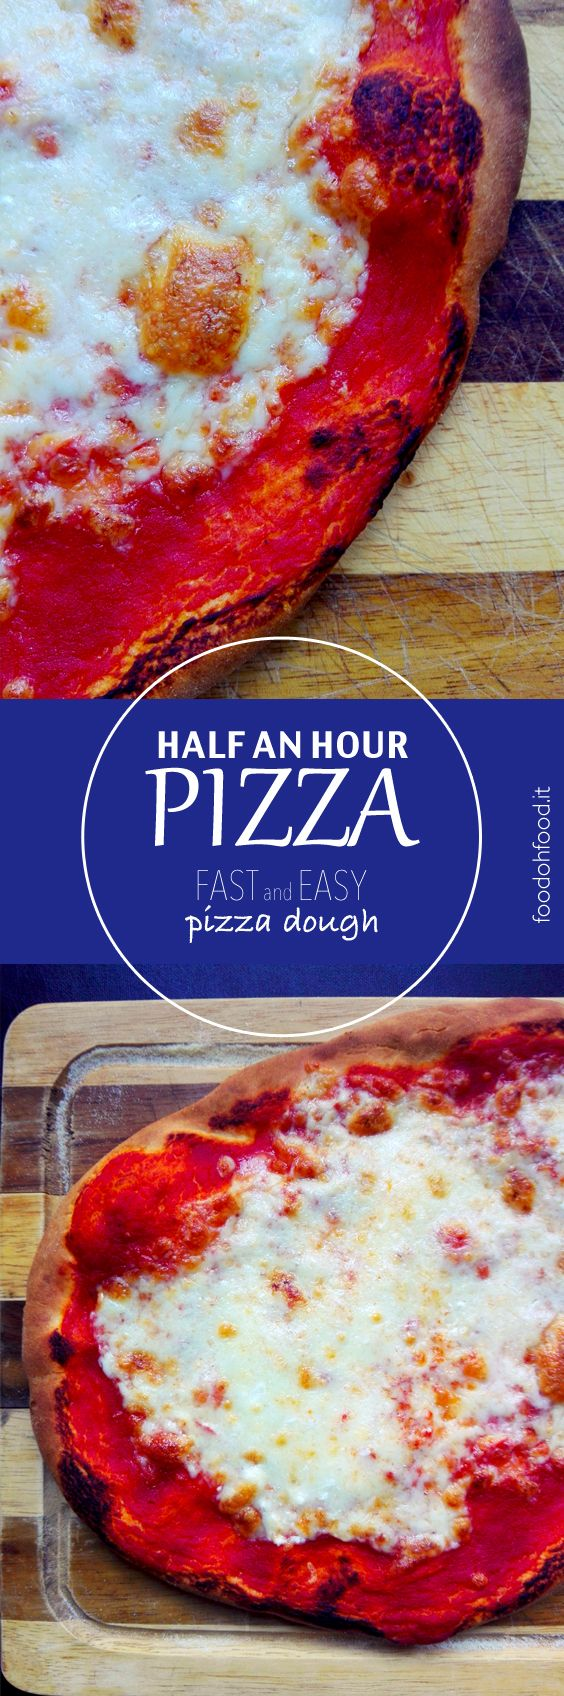 Half an hour pizza - super fast and easy pizza dough